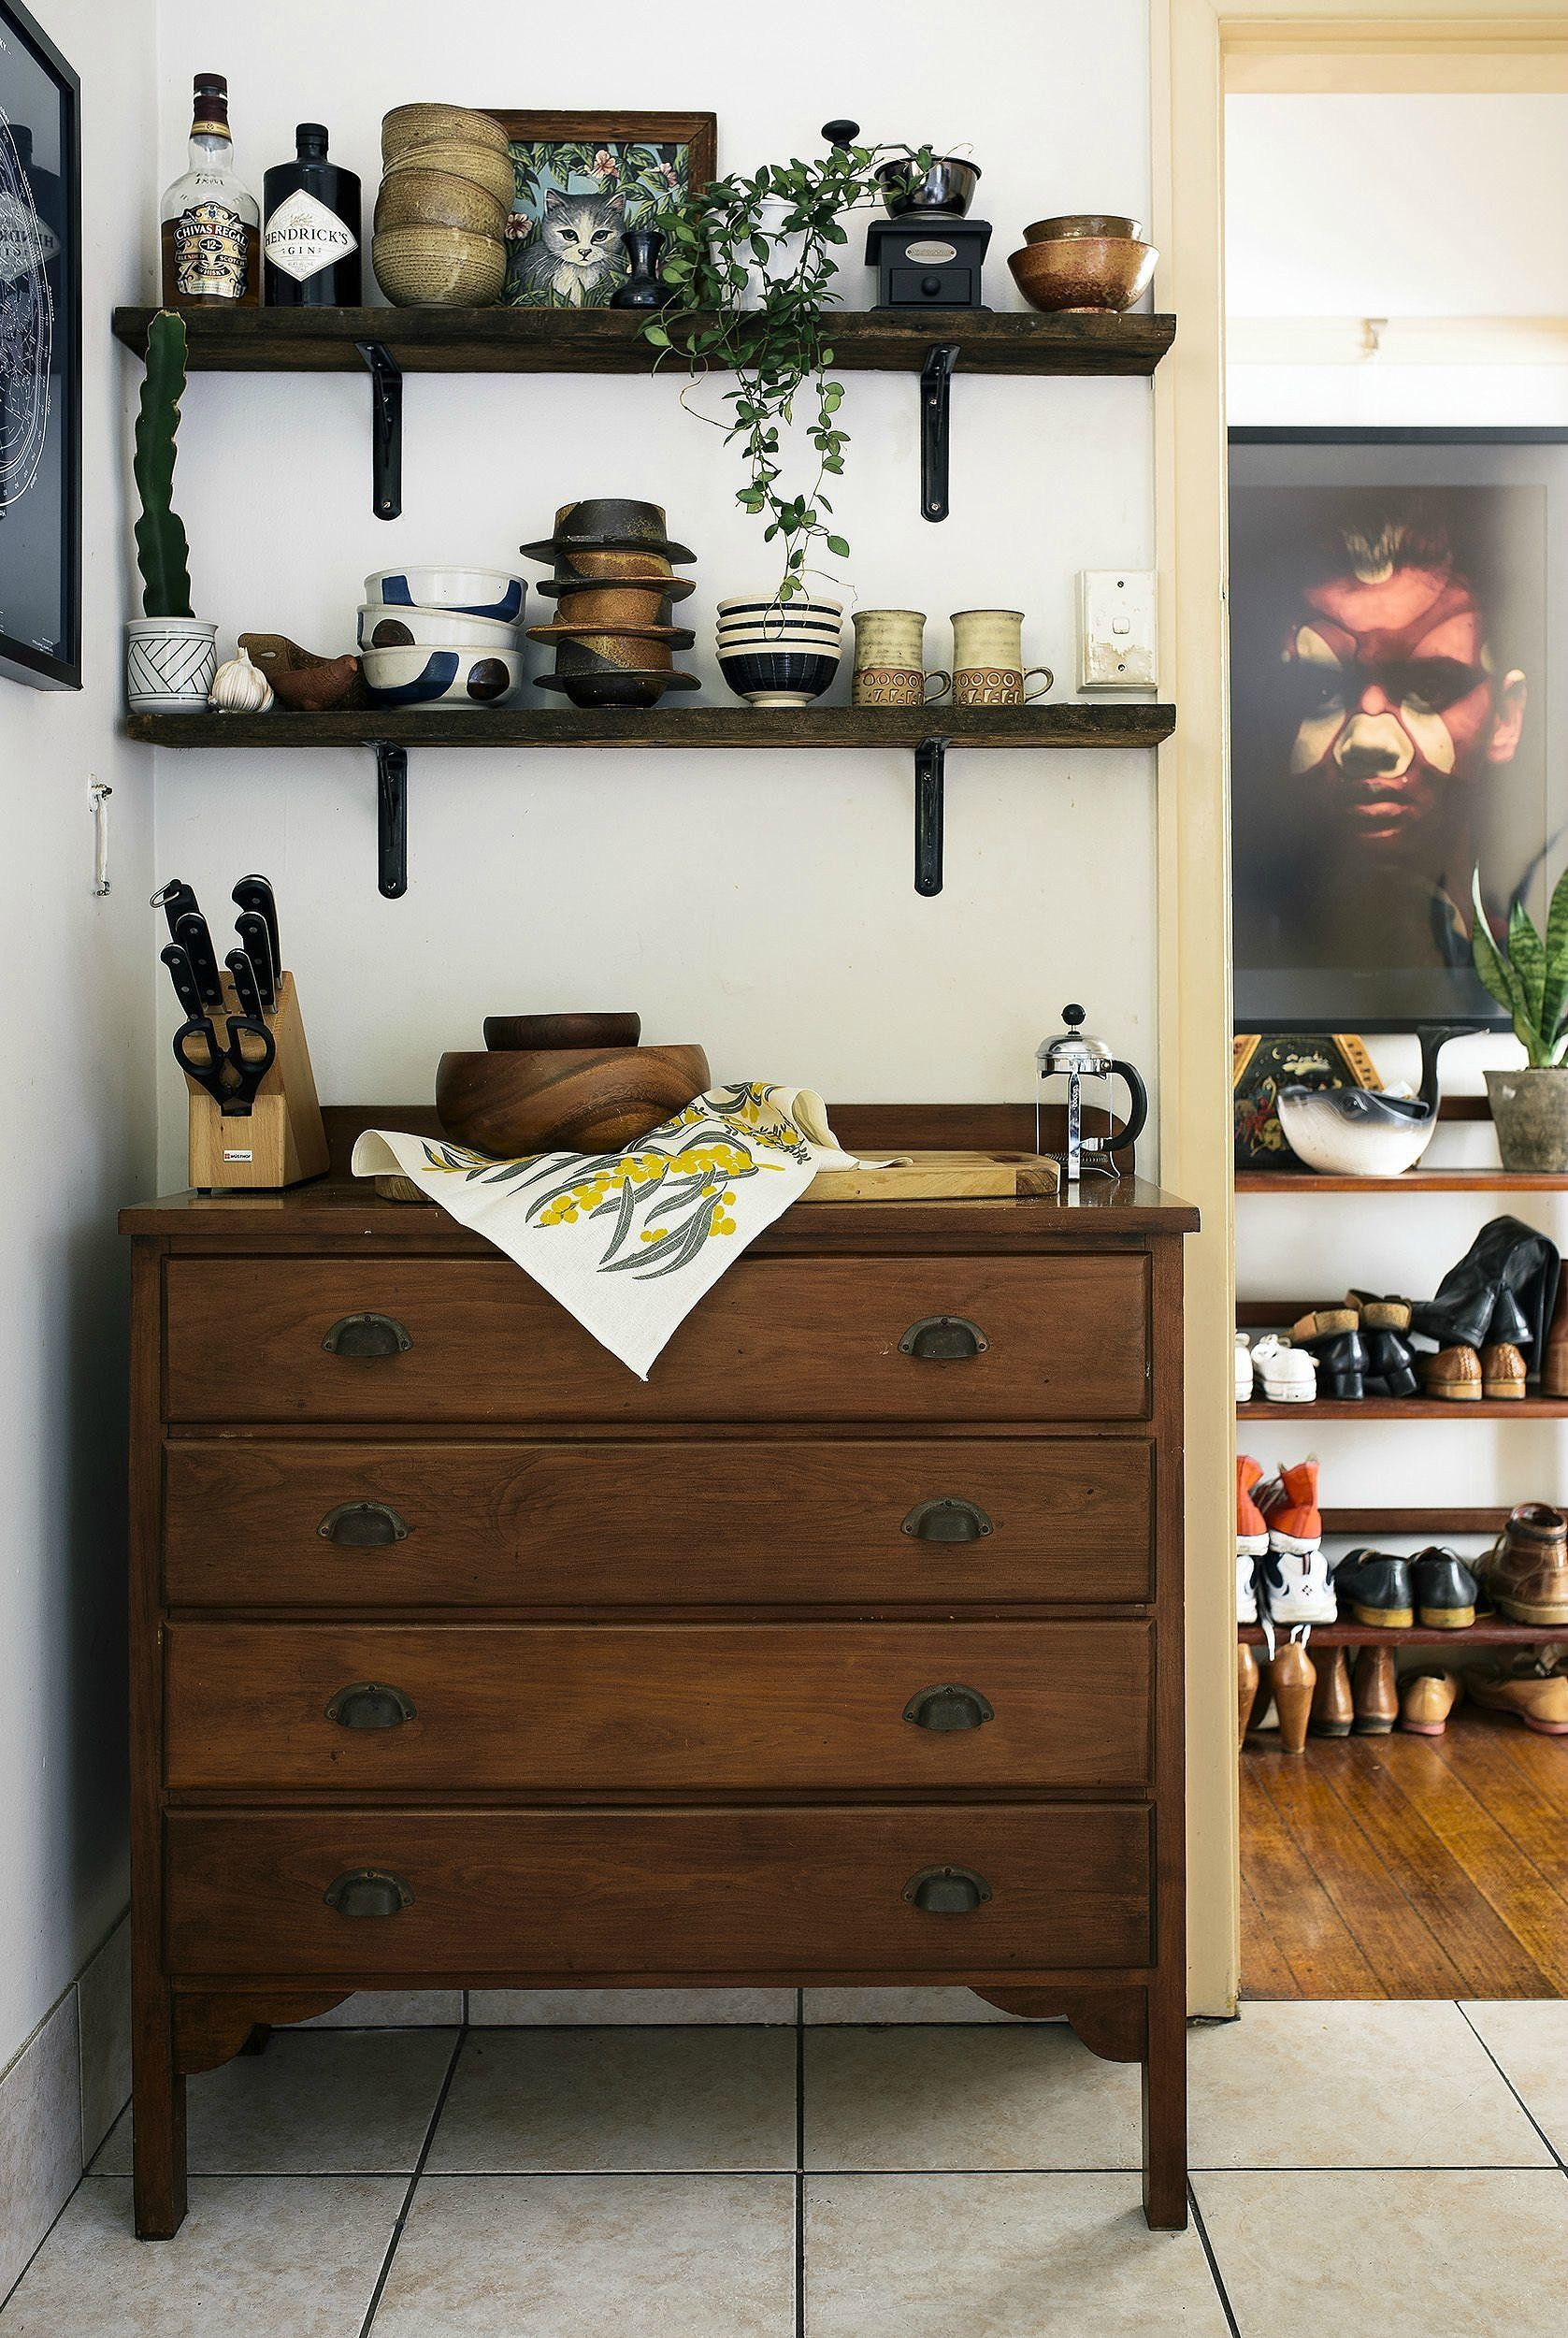 Were Impressed By The Ingenious Way Homeowner Used Floating Shelves And A Repurposed Dresser To Create Much Needed Kitchen Storage